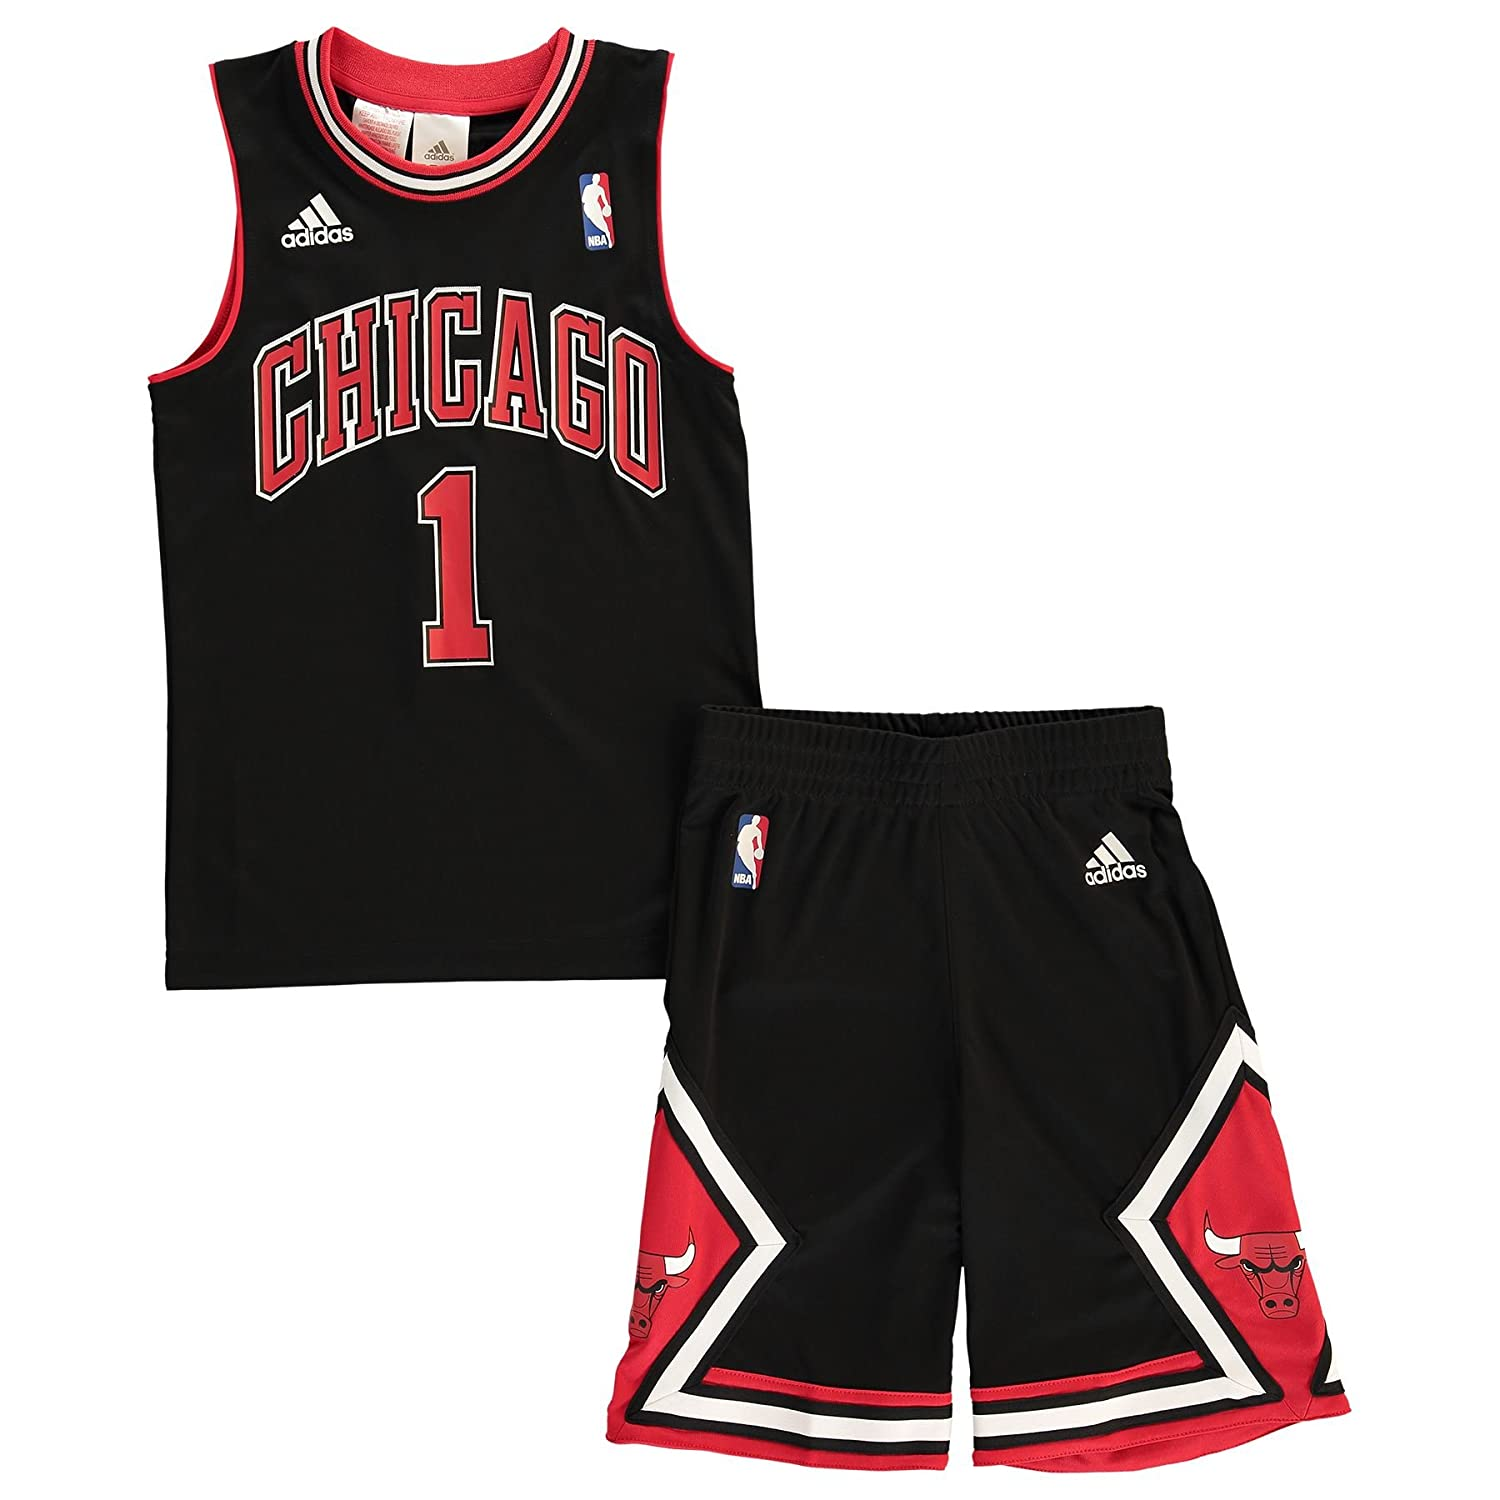 Conjunto Basketball Adidas NBA Mini-Kit Chicago Bulls Derrick Rose nº1 Para Niño / Adolescente: Amazon.es: Hogar